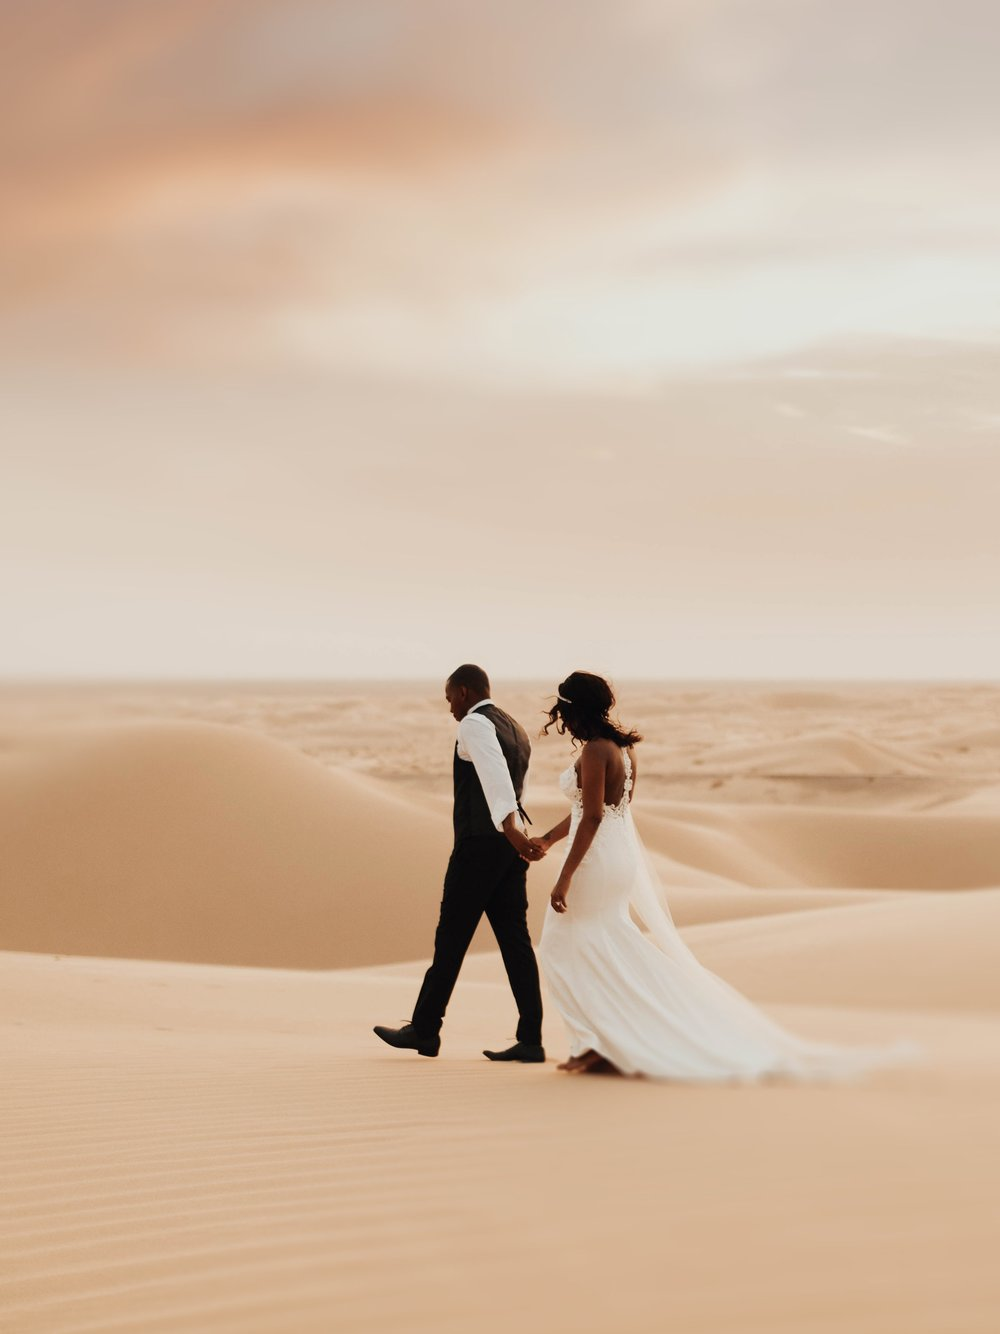 Brittney & Mike   SUNSET DESERT BRIDALS